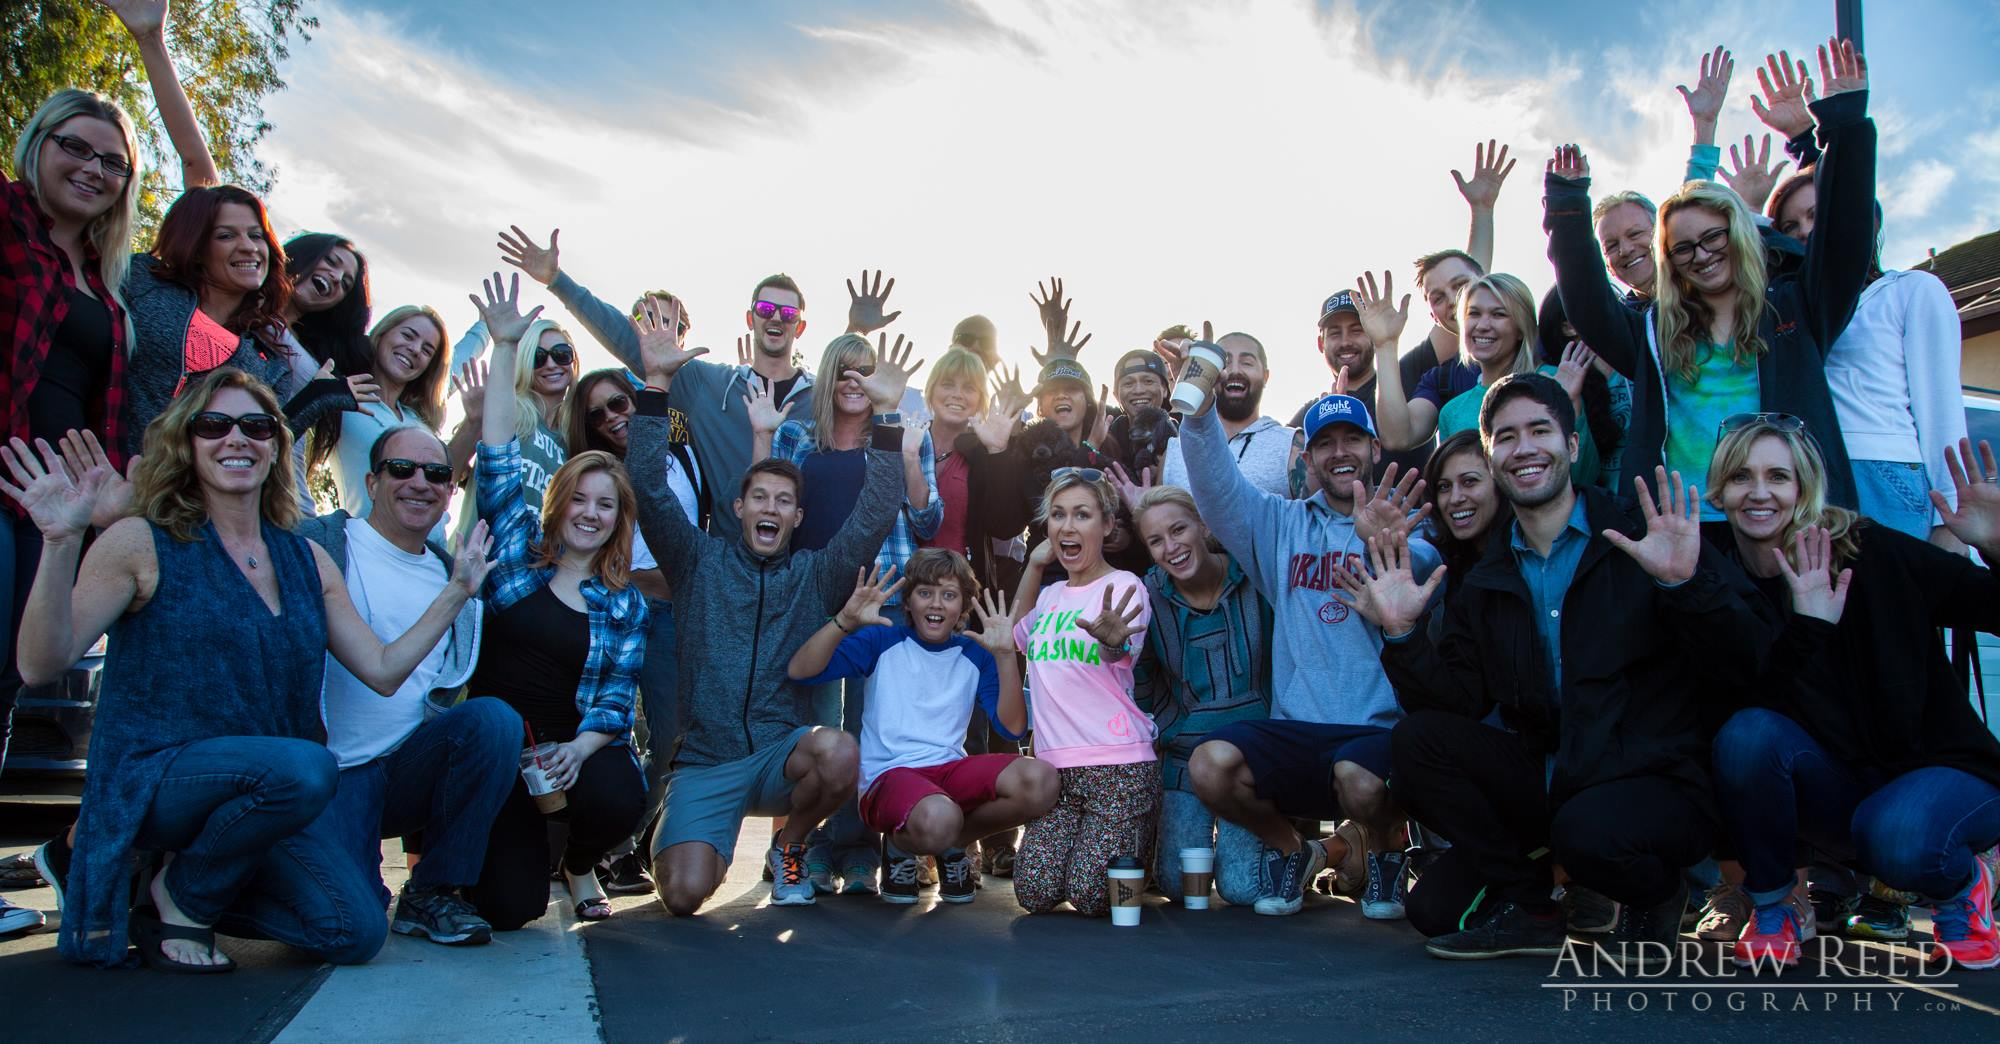 7am Friday Morning - San Diego: I can't say enough about this group of people! We had all ages, all walks of life and and getting to know everyone's story was so inspiring!